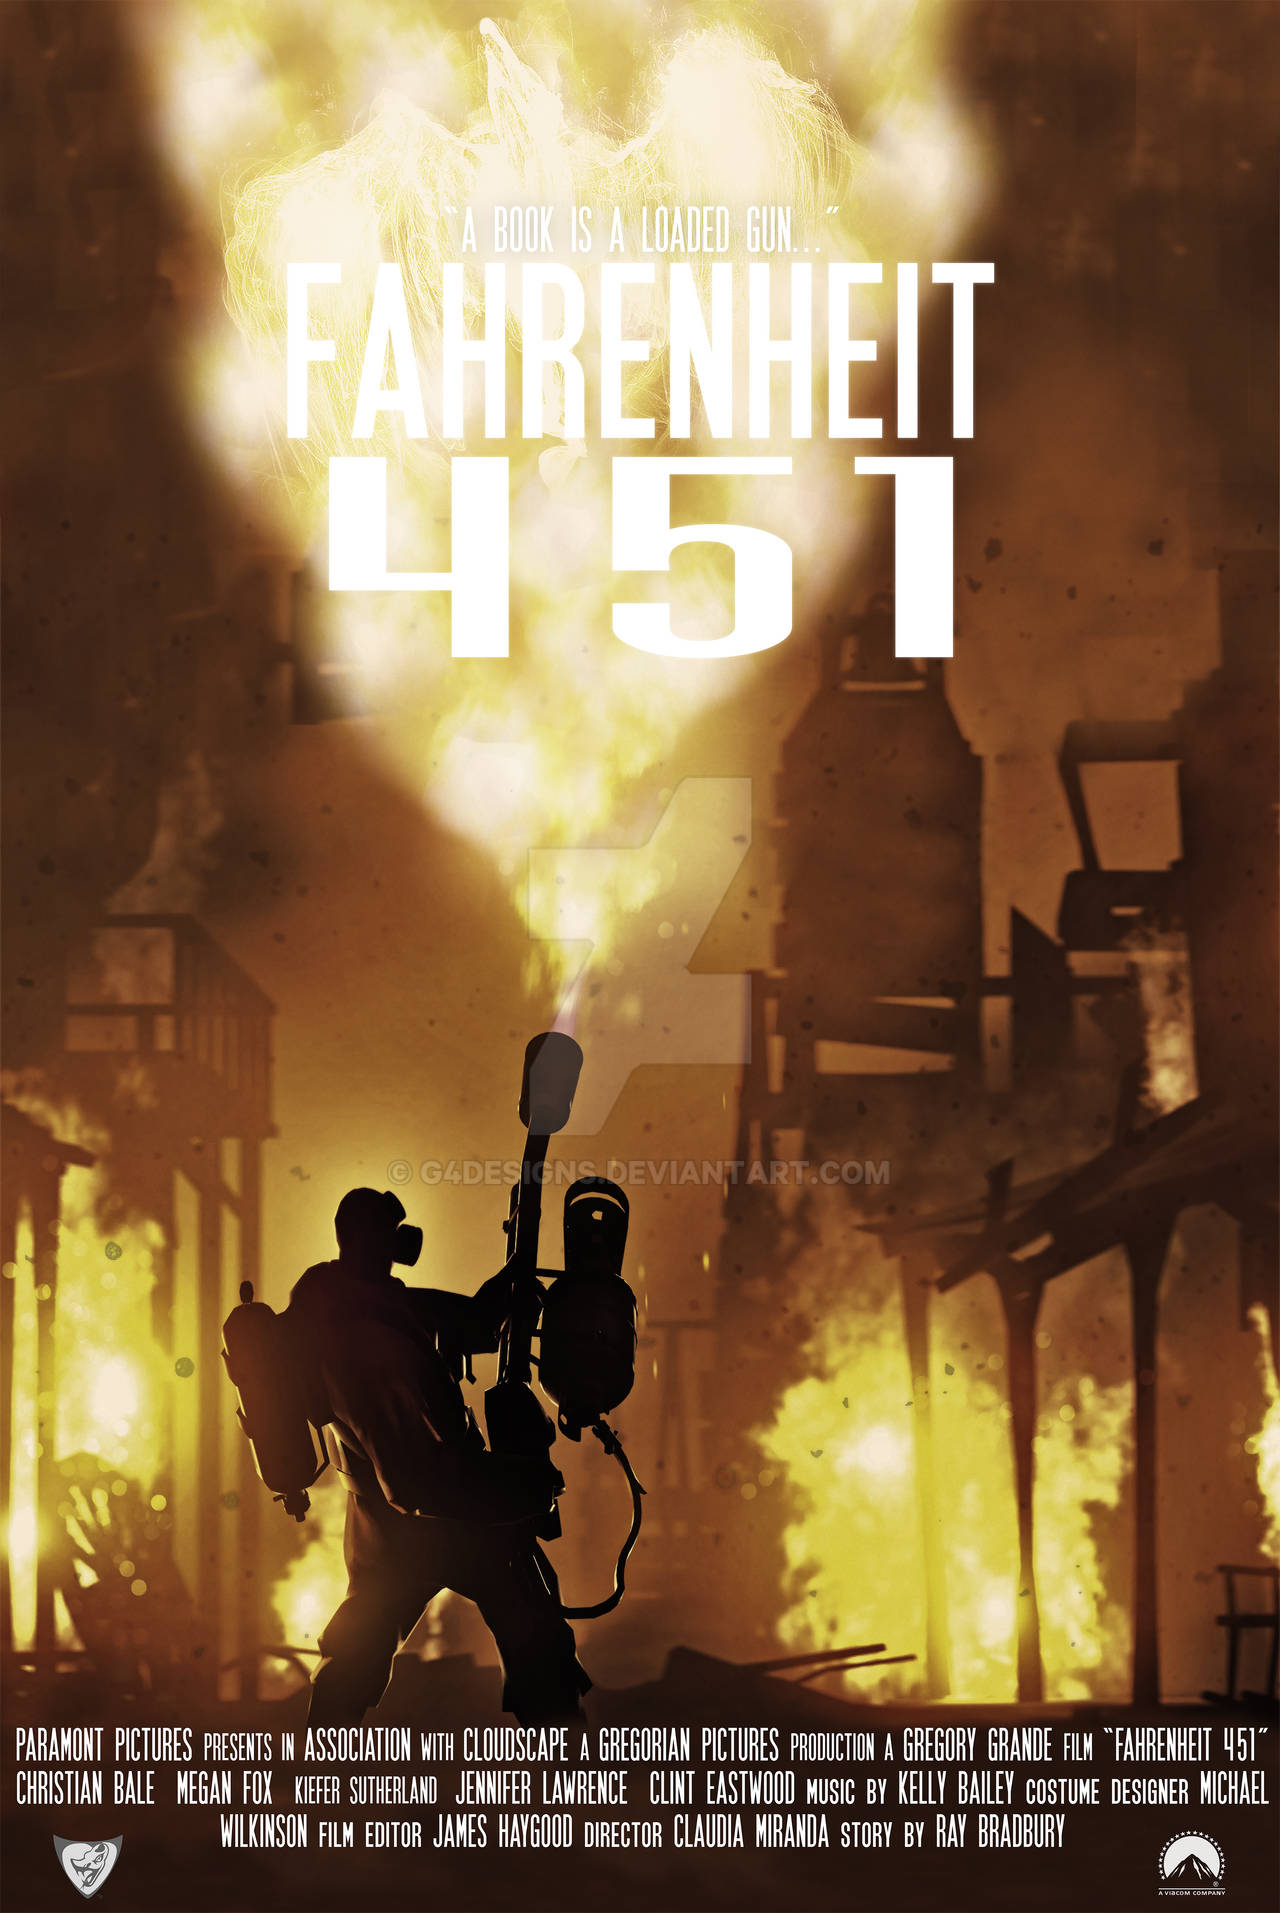 Movie posters projects fahrenheit 451